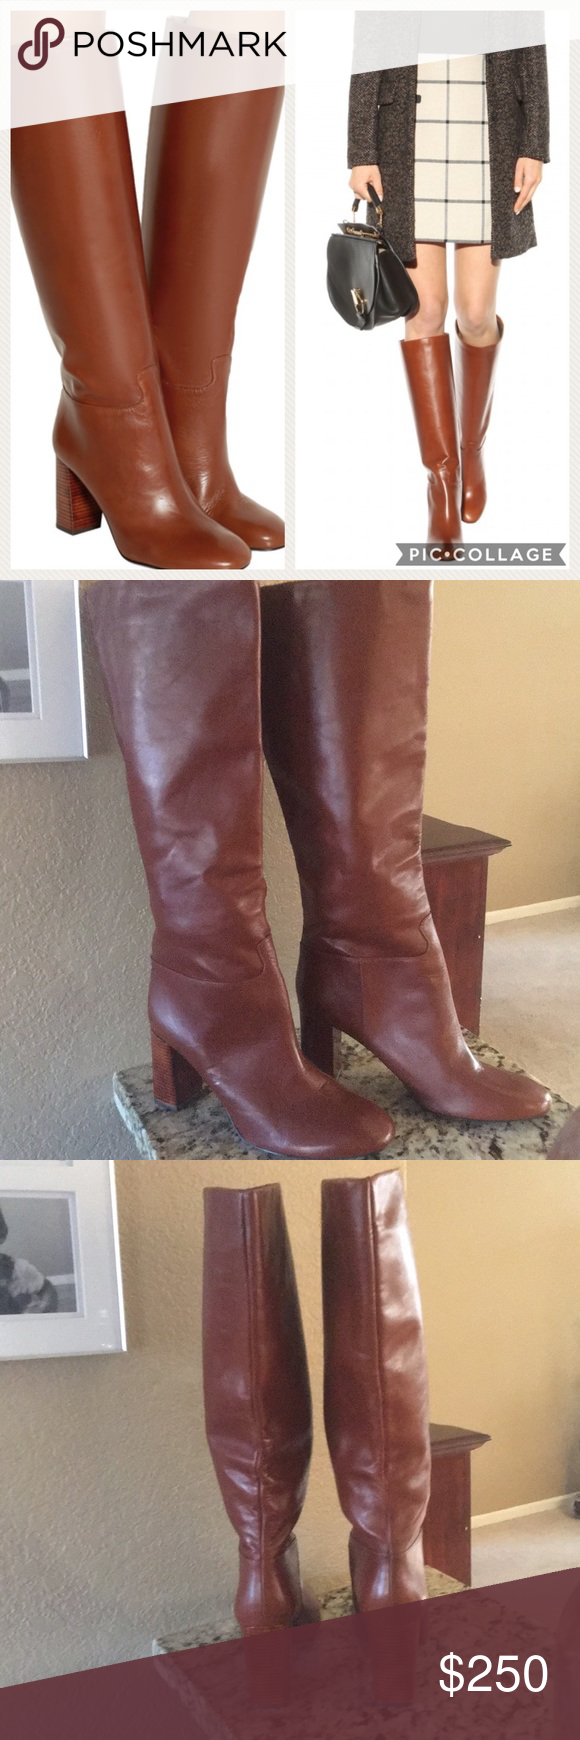 644897a35 New Tory Burch Devon knee high boots Never worn! These are so amazing 😍  they